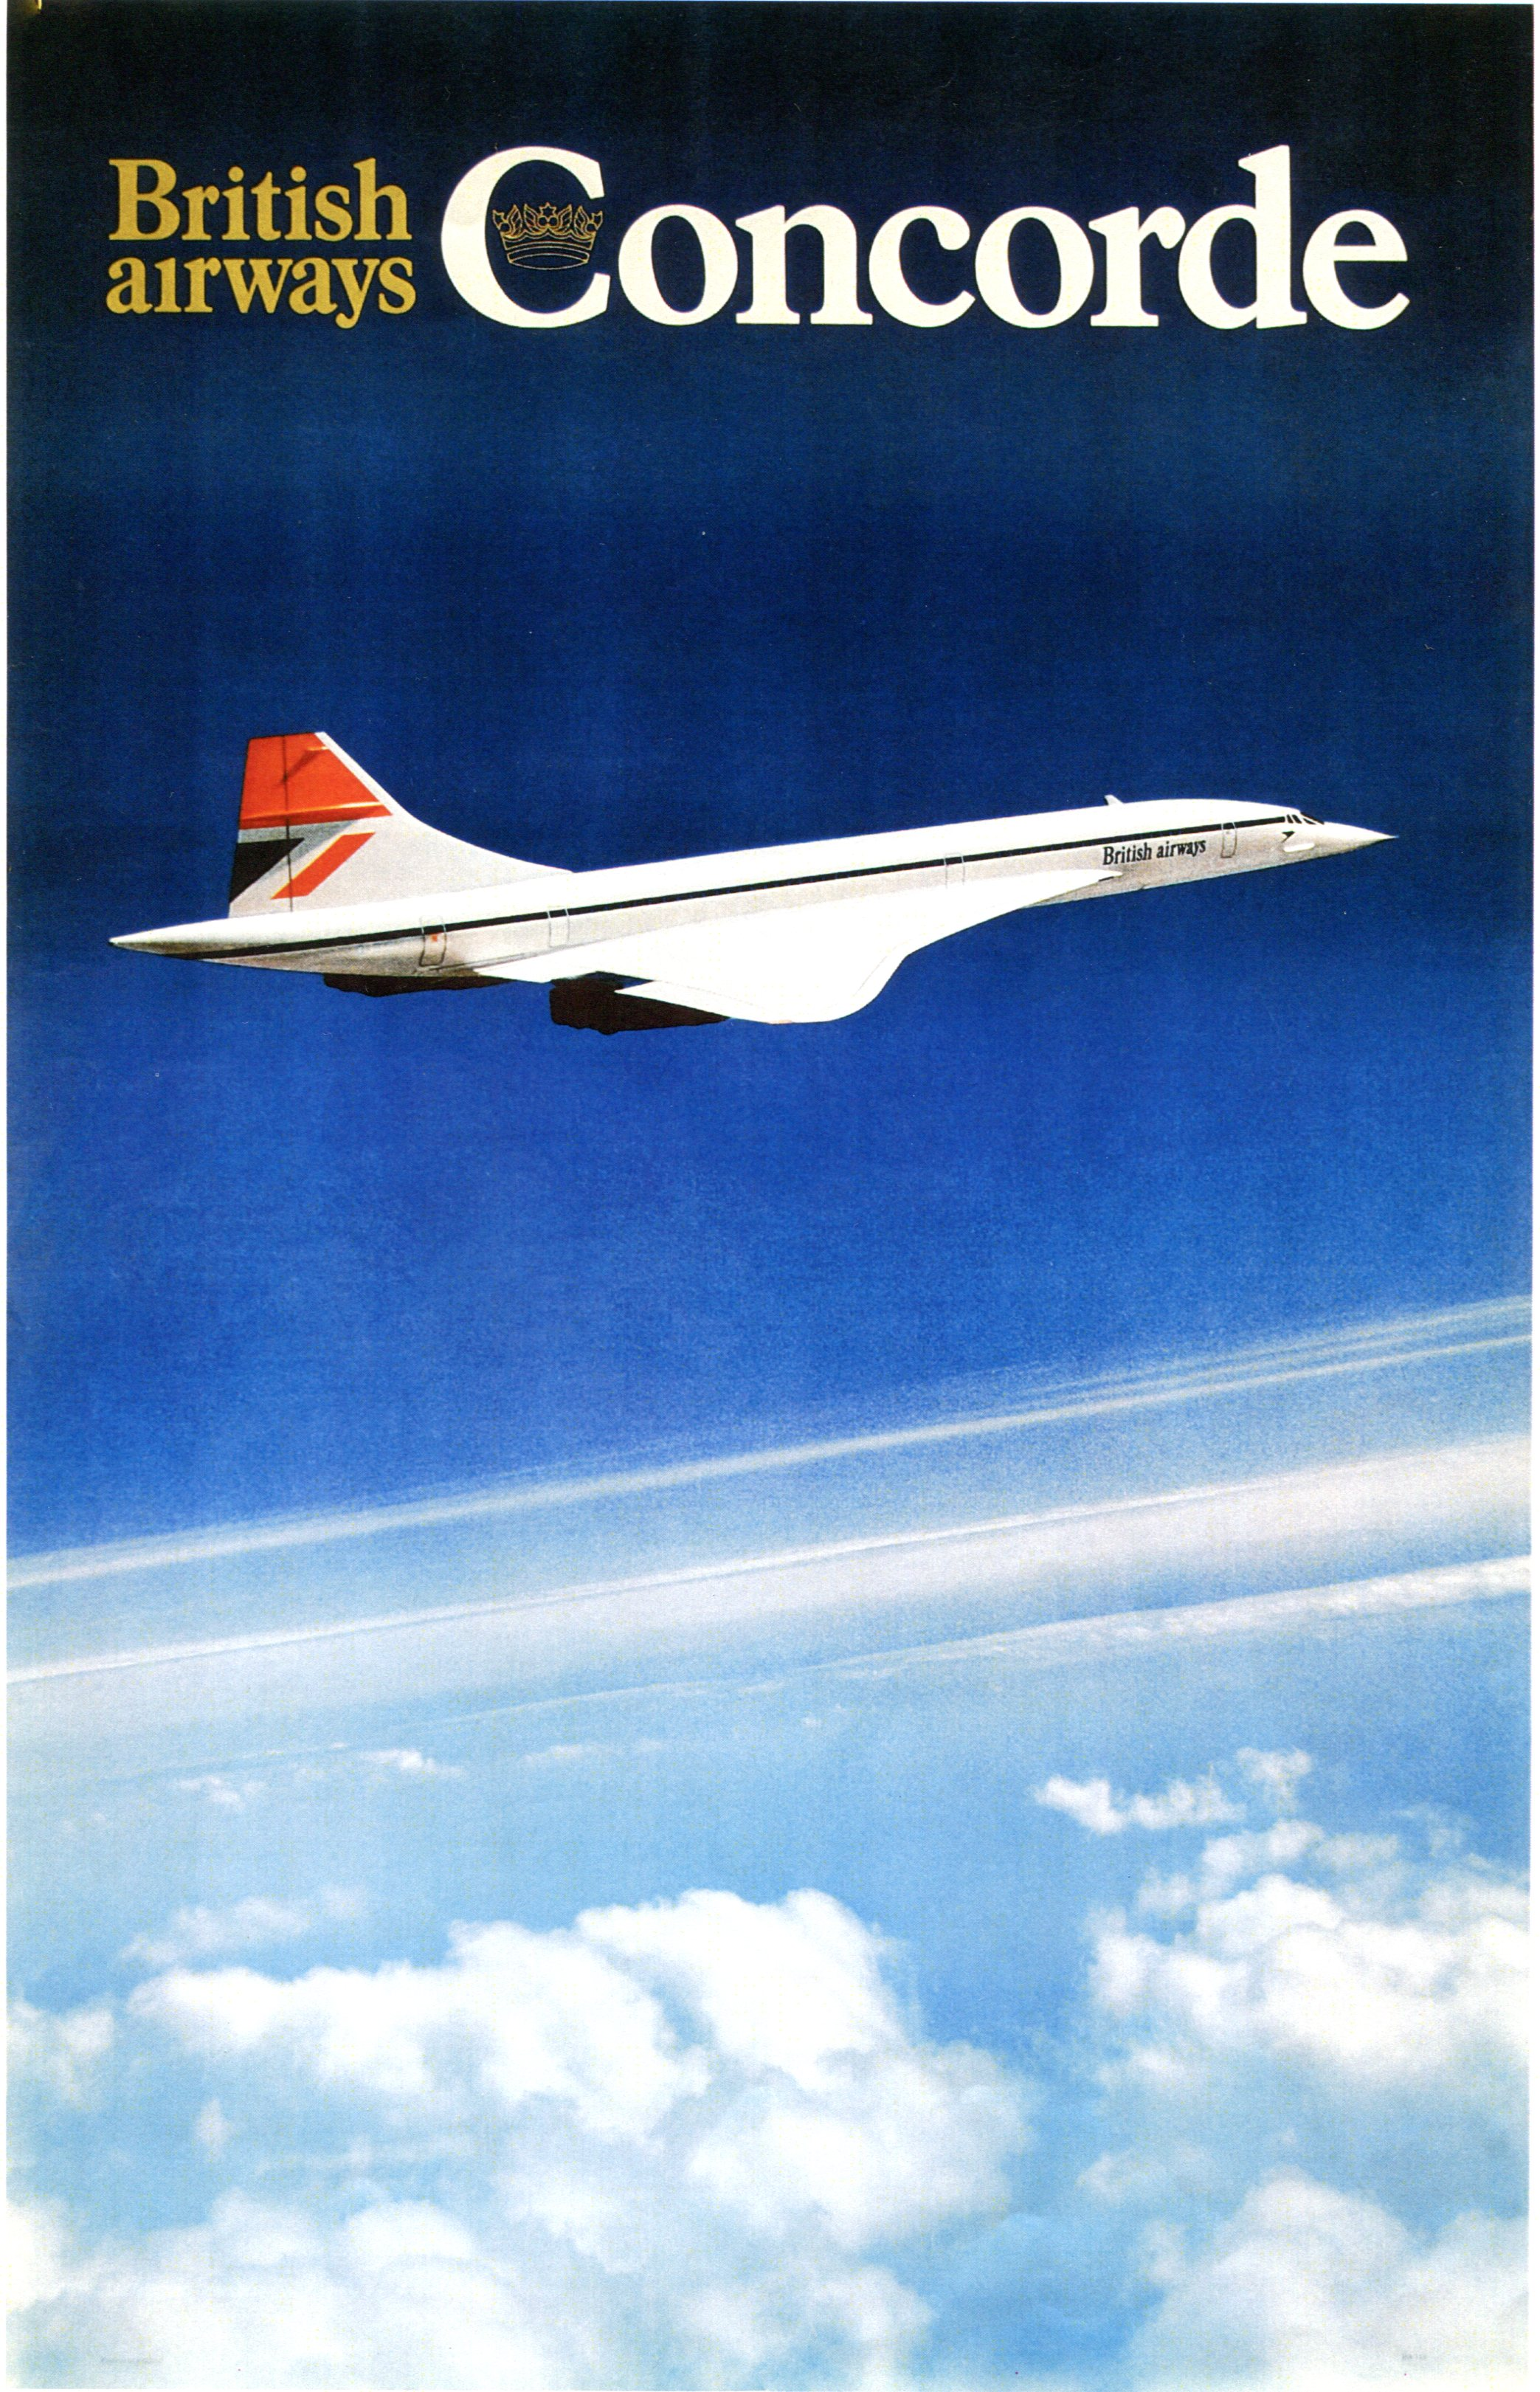 Concorde, l'avion supersonique en avance sur son temps, retiré de la flotte en 2003 - DR : British Airways